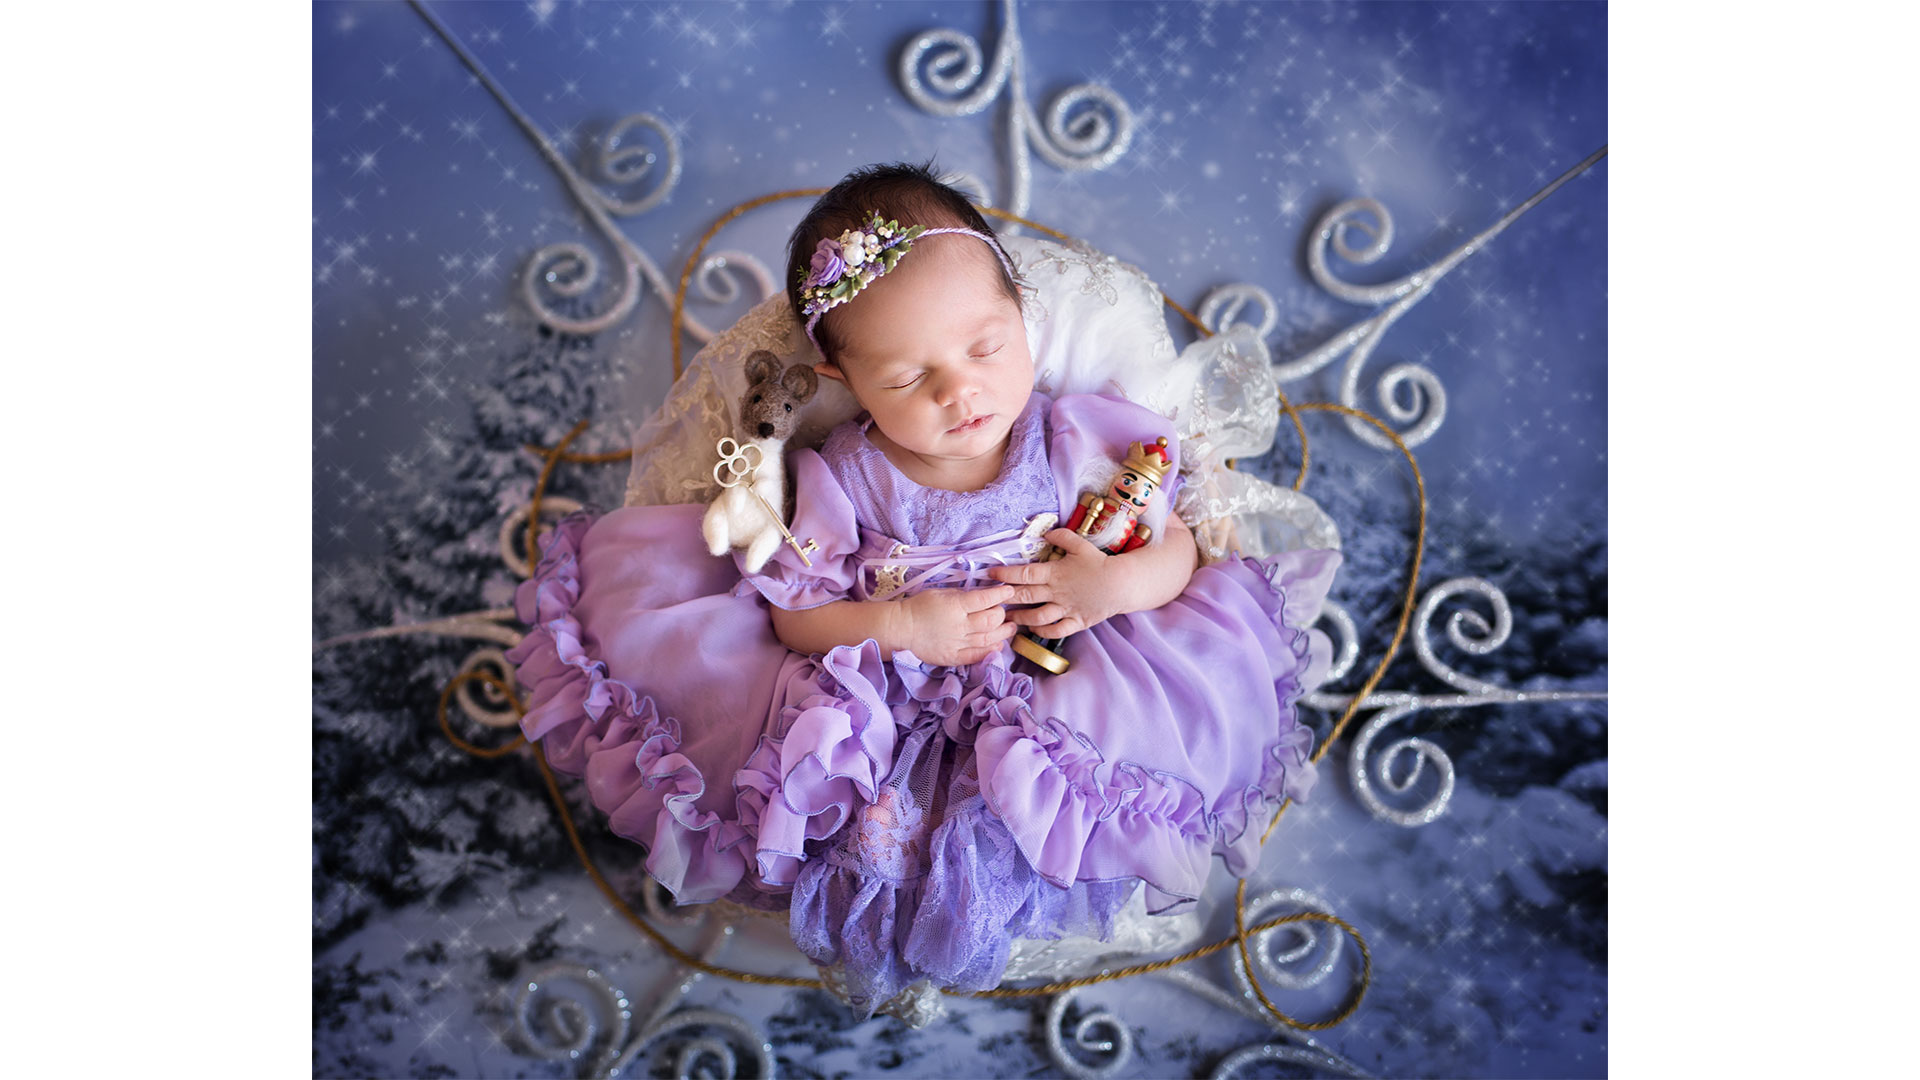 Nutcracker Baby Photoshoot Sleeping Fairy Aerial